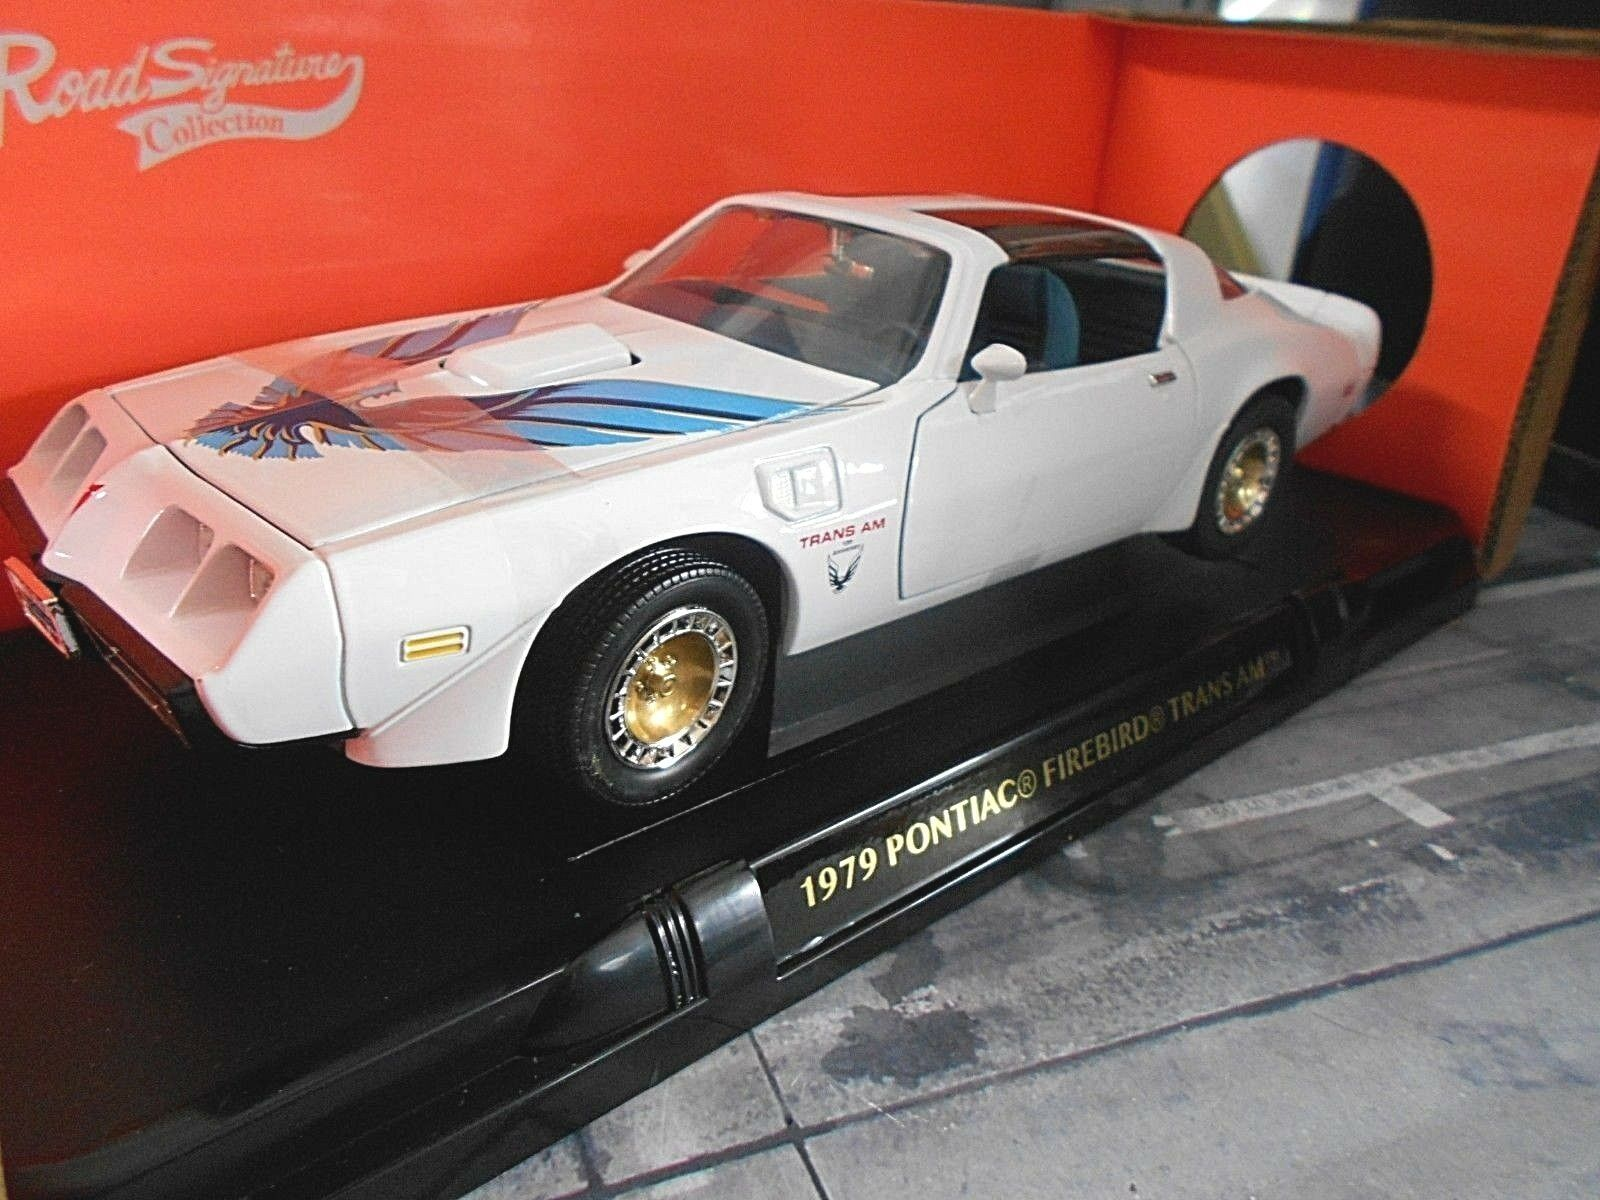 Pontiac Firebird Transam Trans Am Coupe 1979 White v8 Muscle SP Yatming 1 18